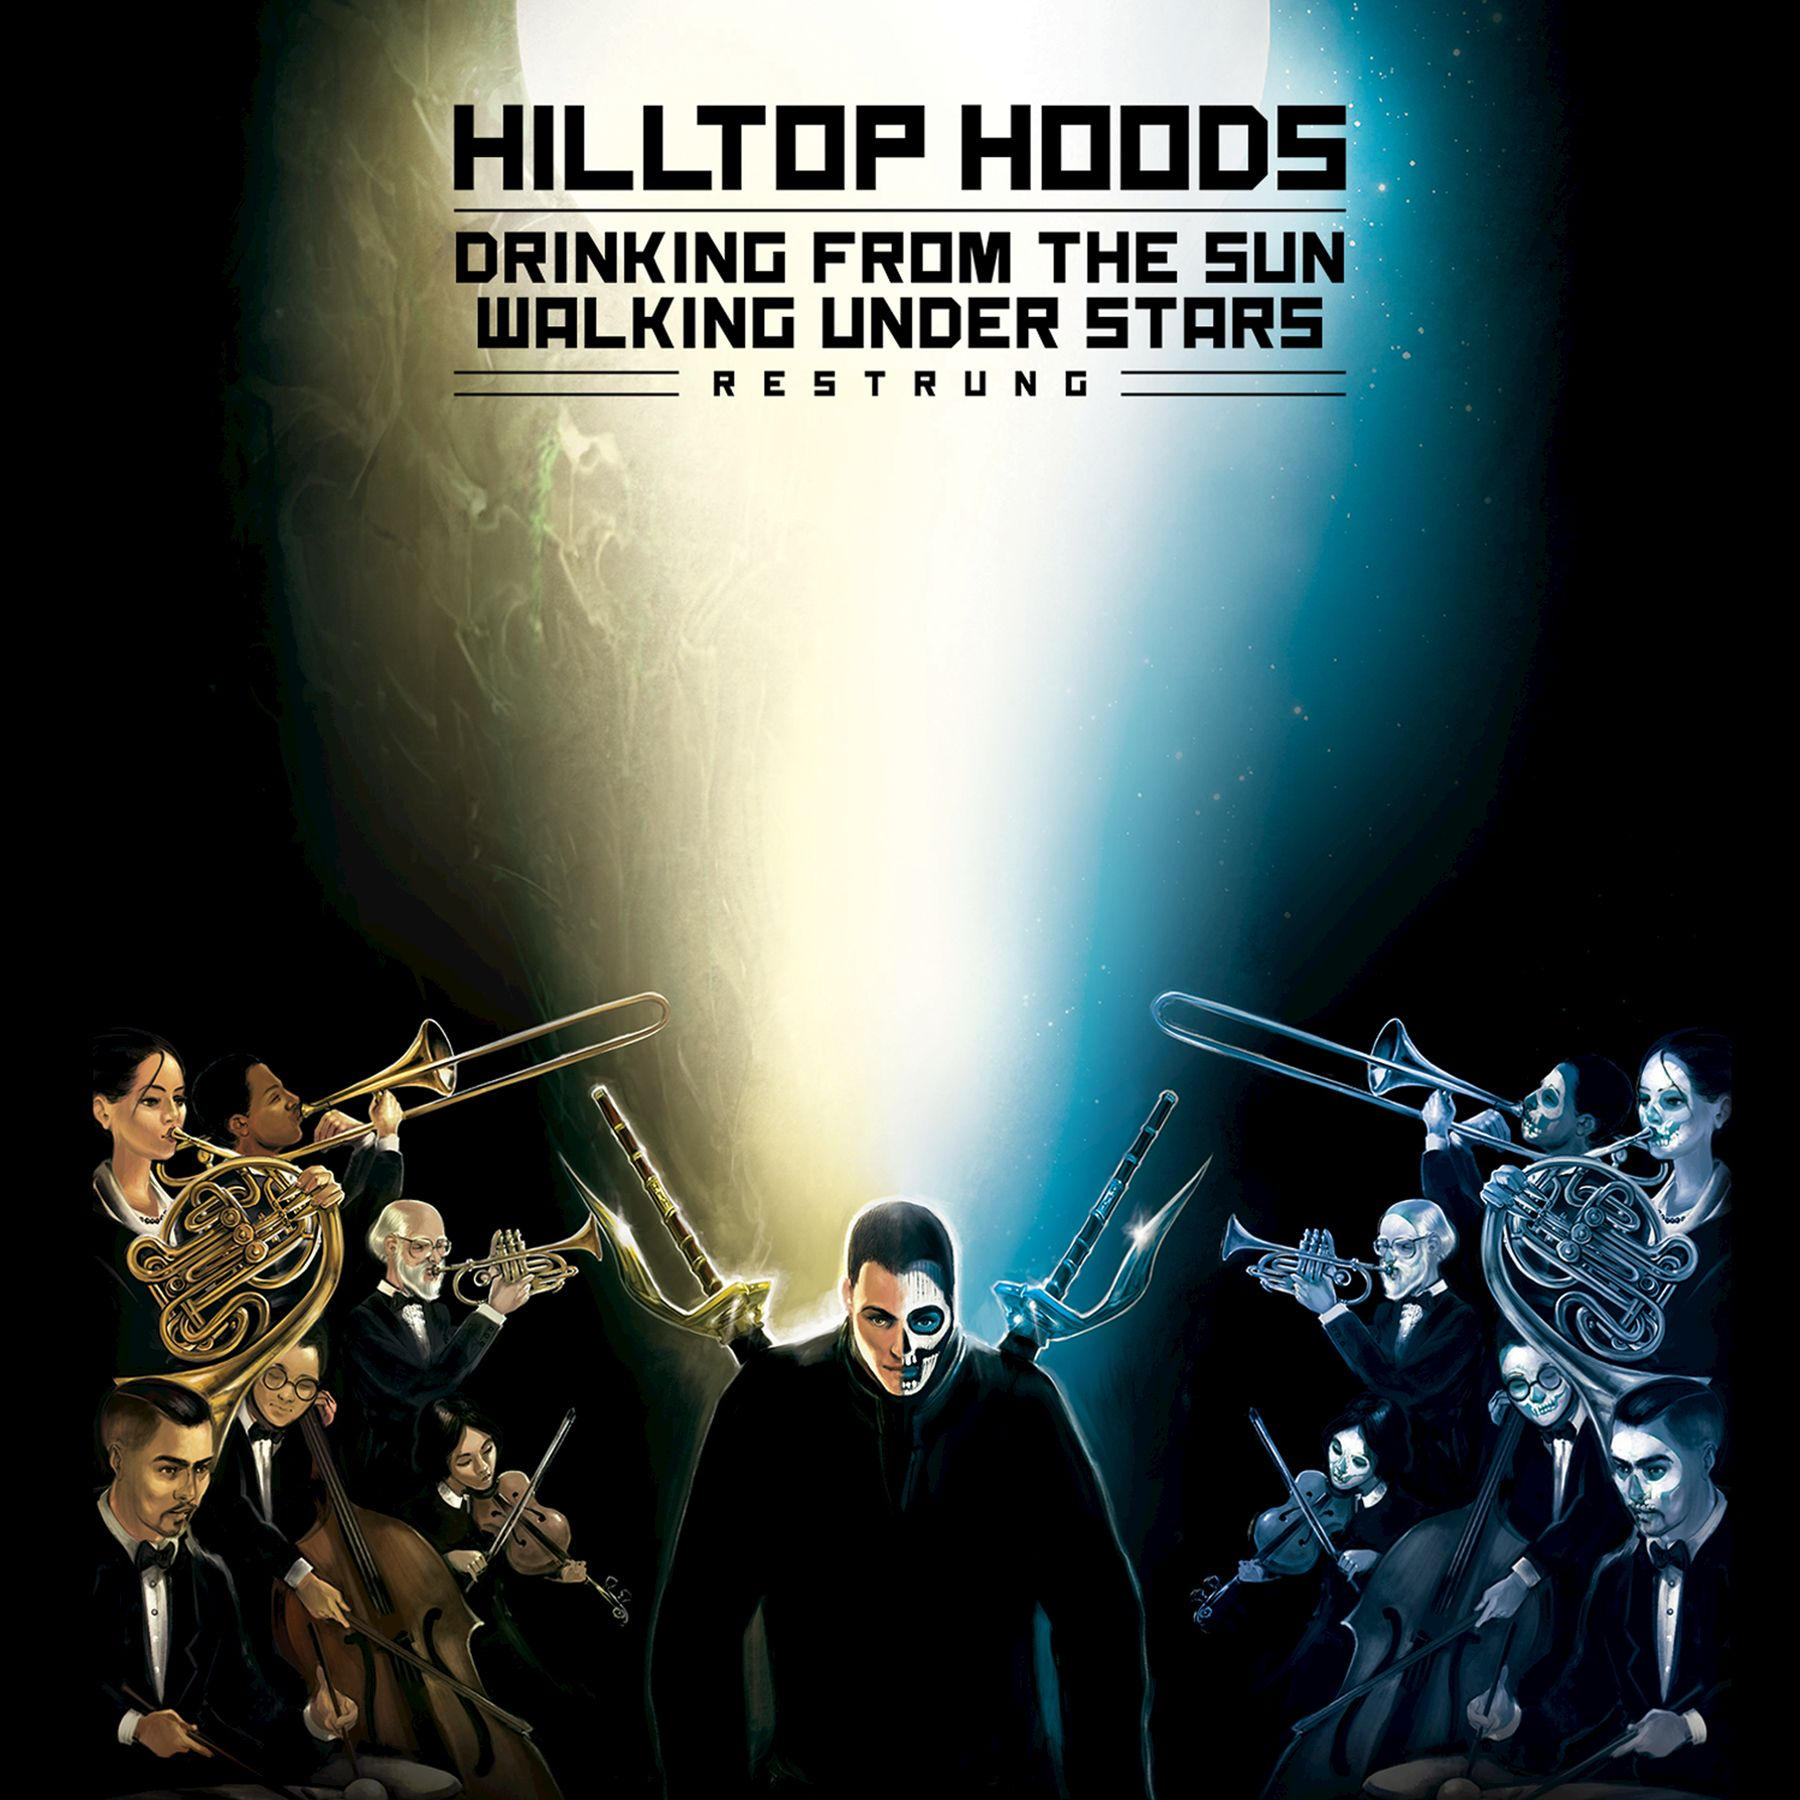 Hilltop Hoods - Drinking From The Sun - Walking Under Stars - Restrung album cover